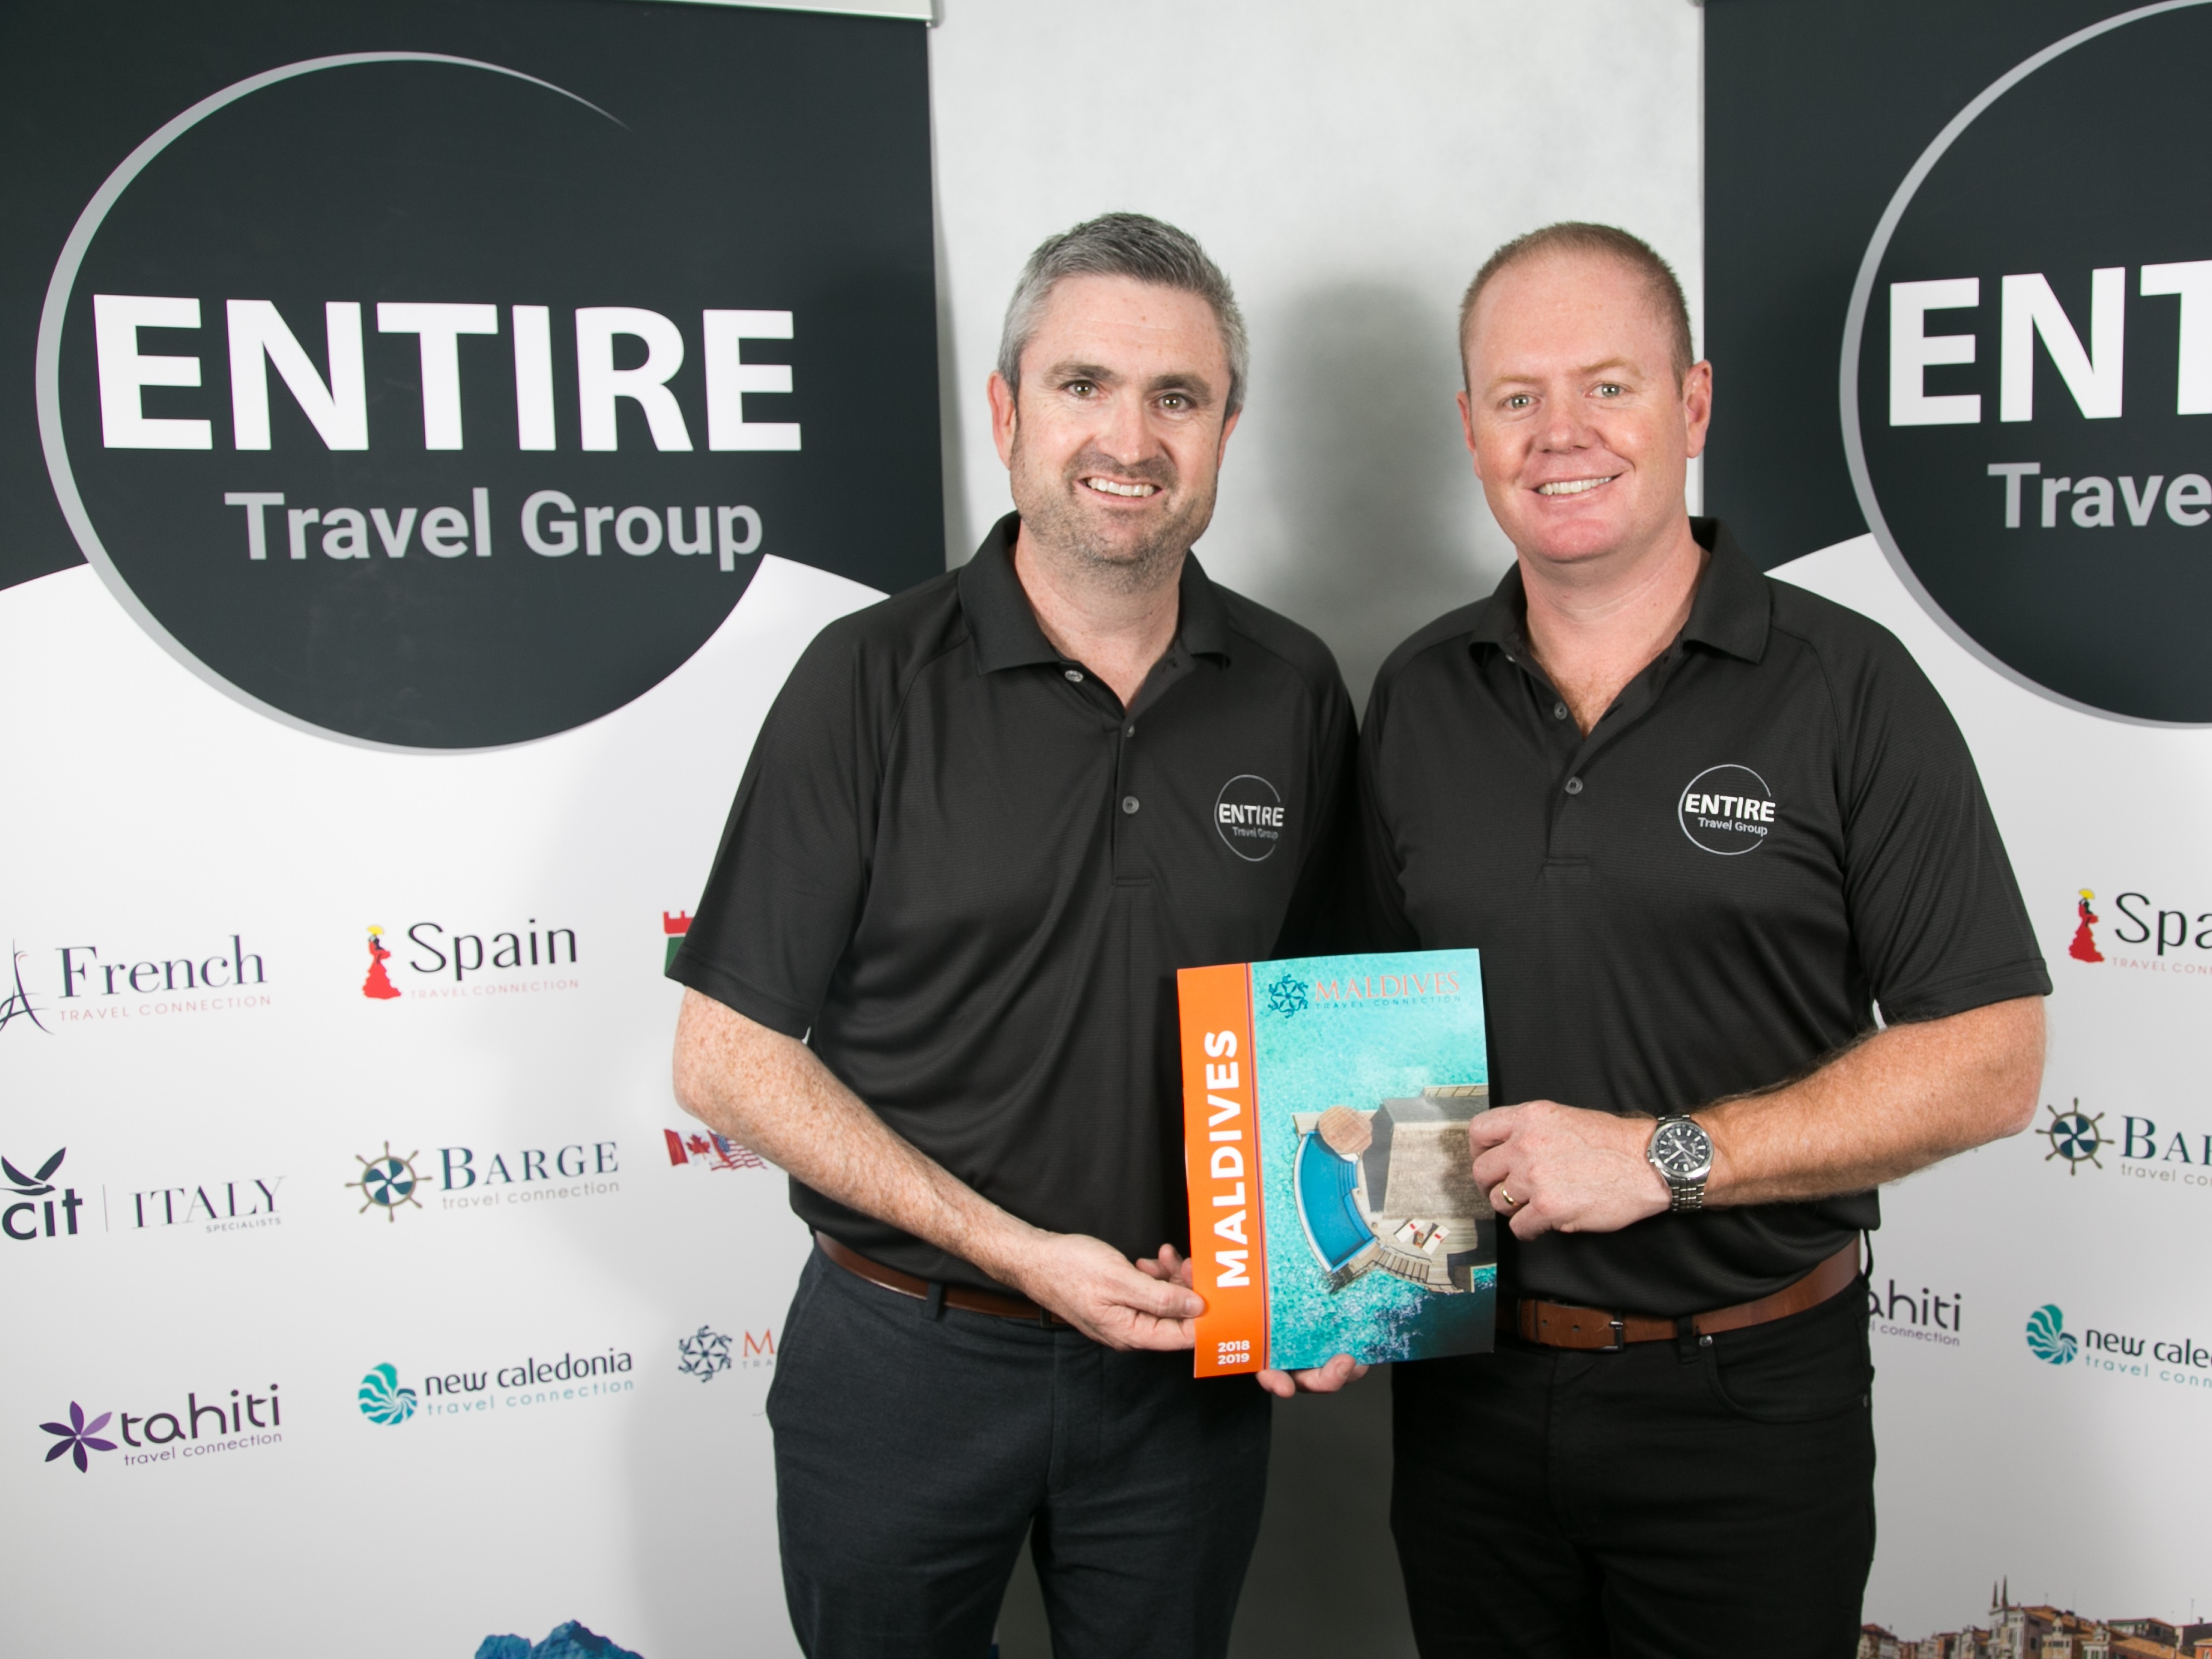 (L-R) Entire Travel Group Sales & Marketing Director Greg McCallum and CEO Brad McDonnell